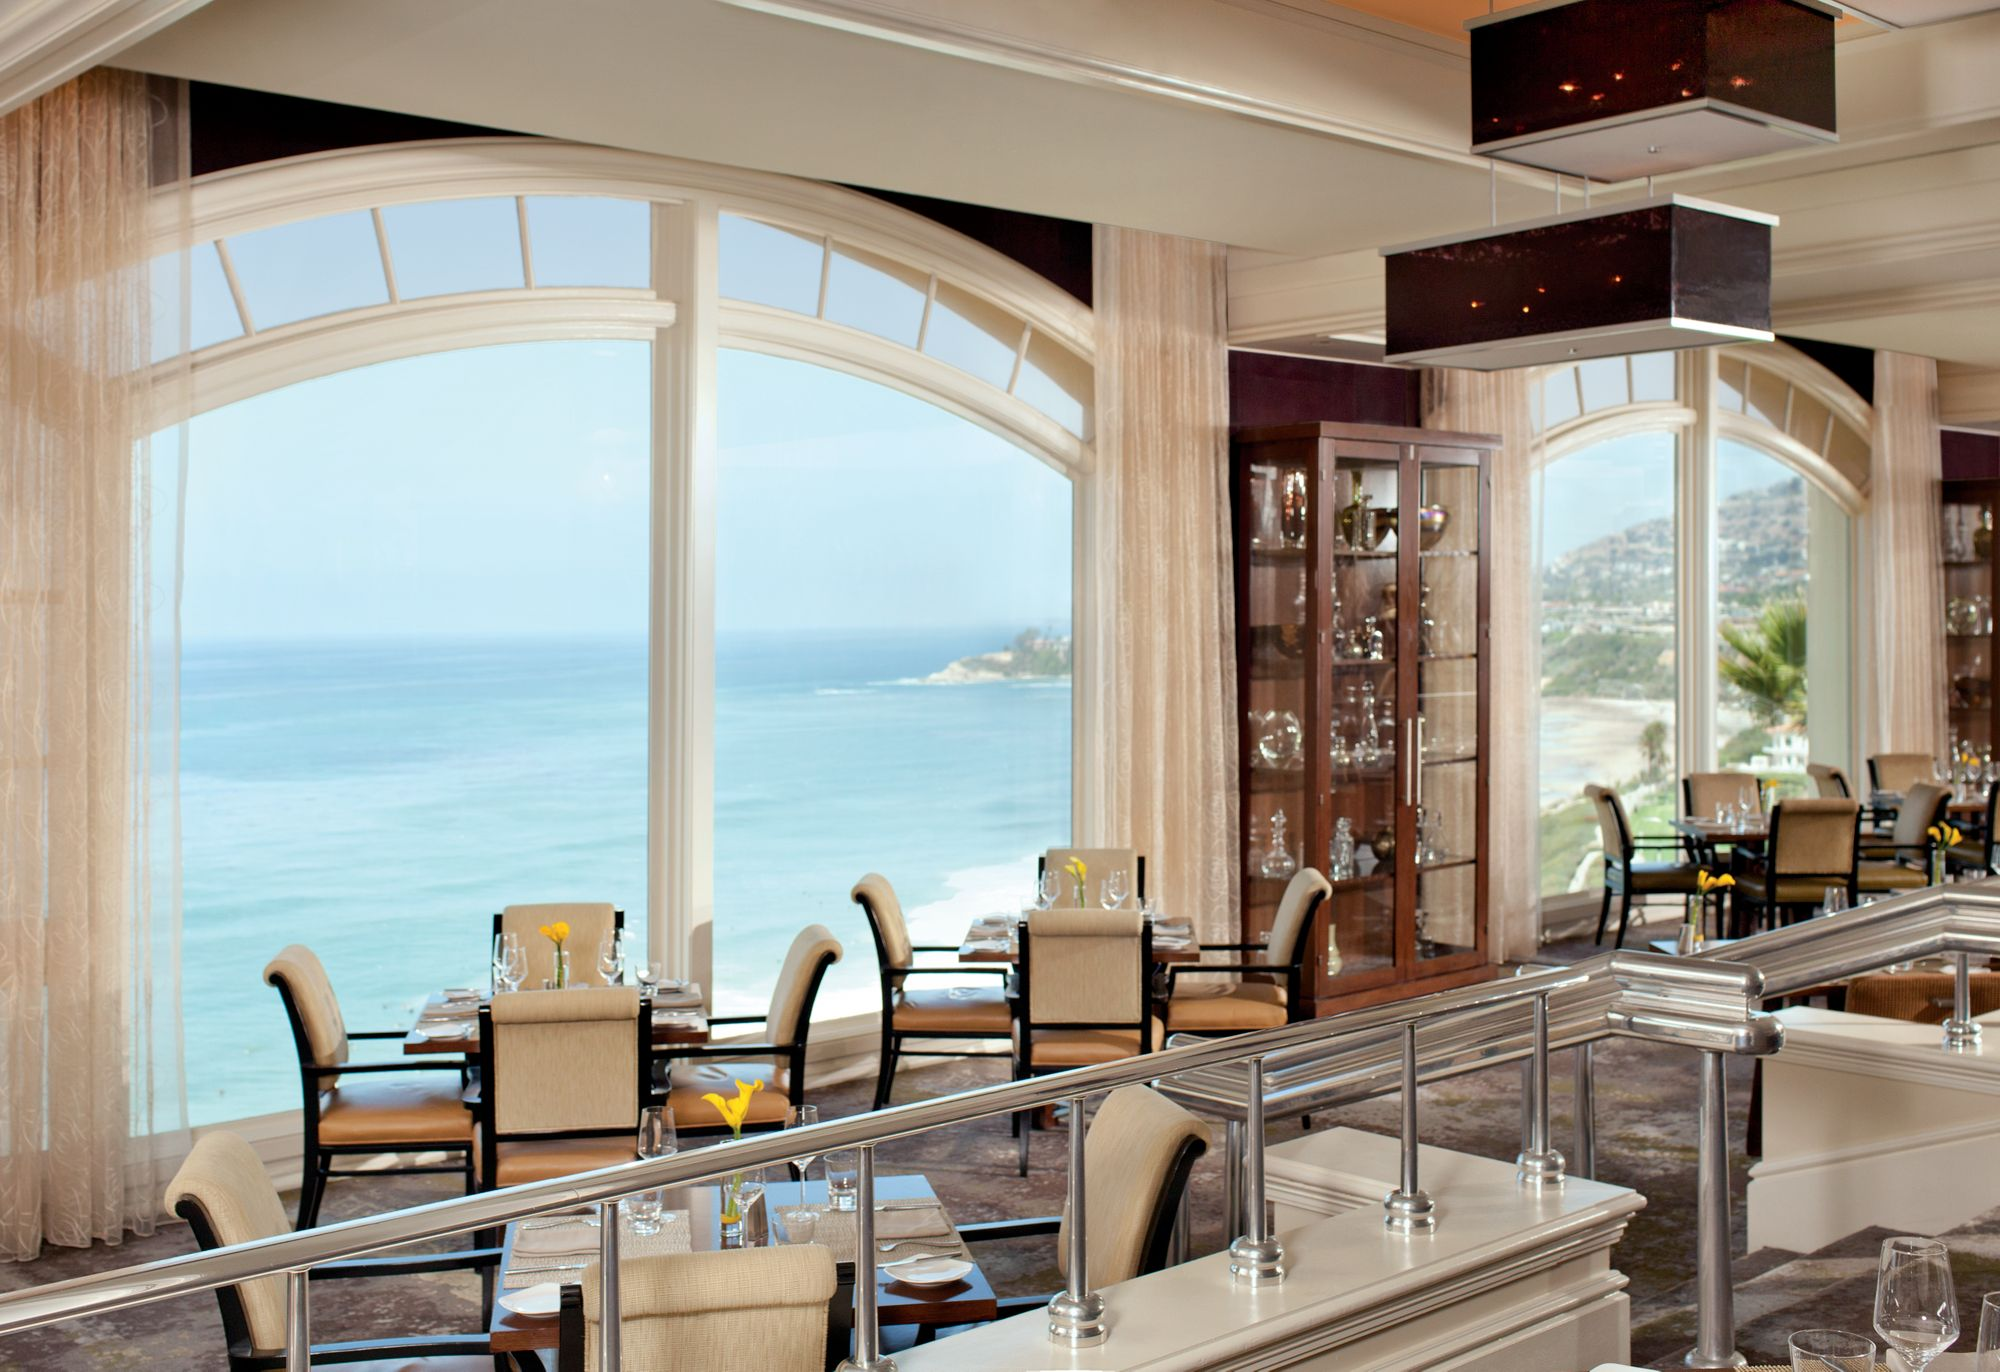 Ocean View Restaurants In Dana Point Restaurants With A